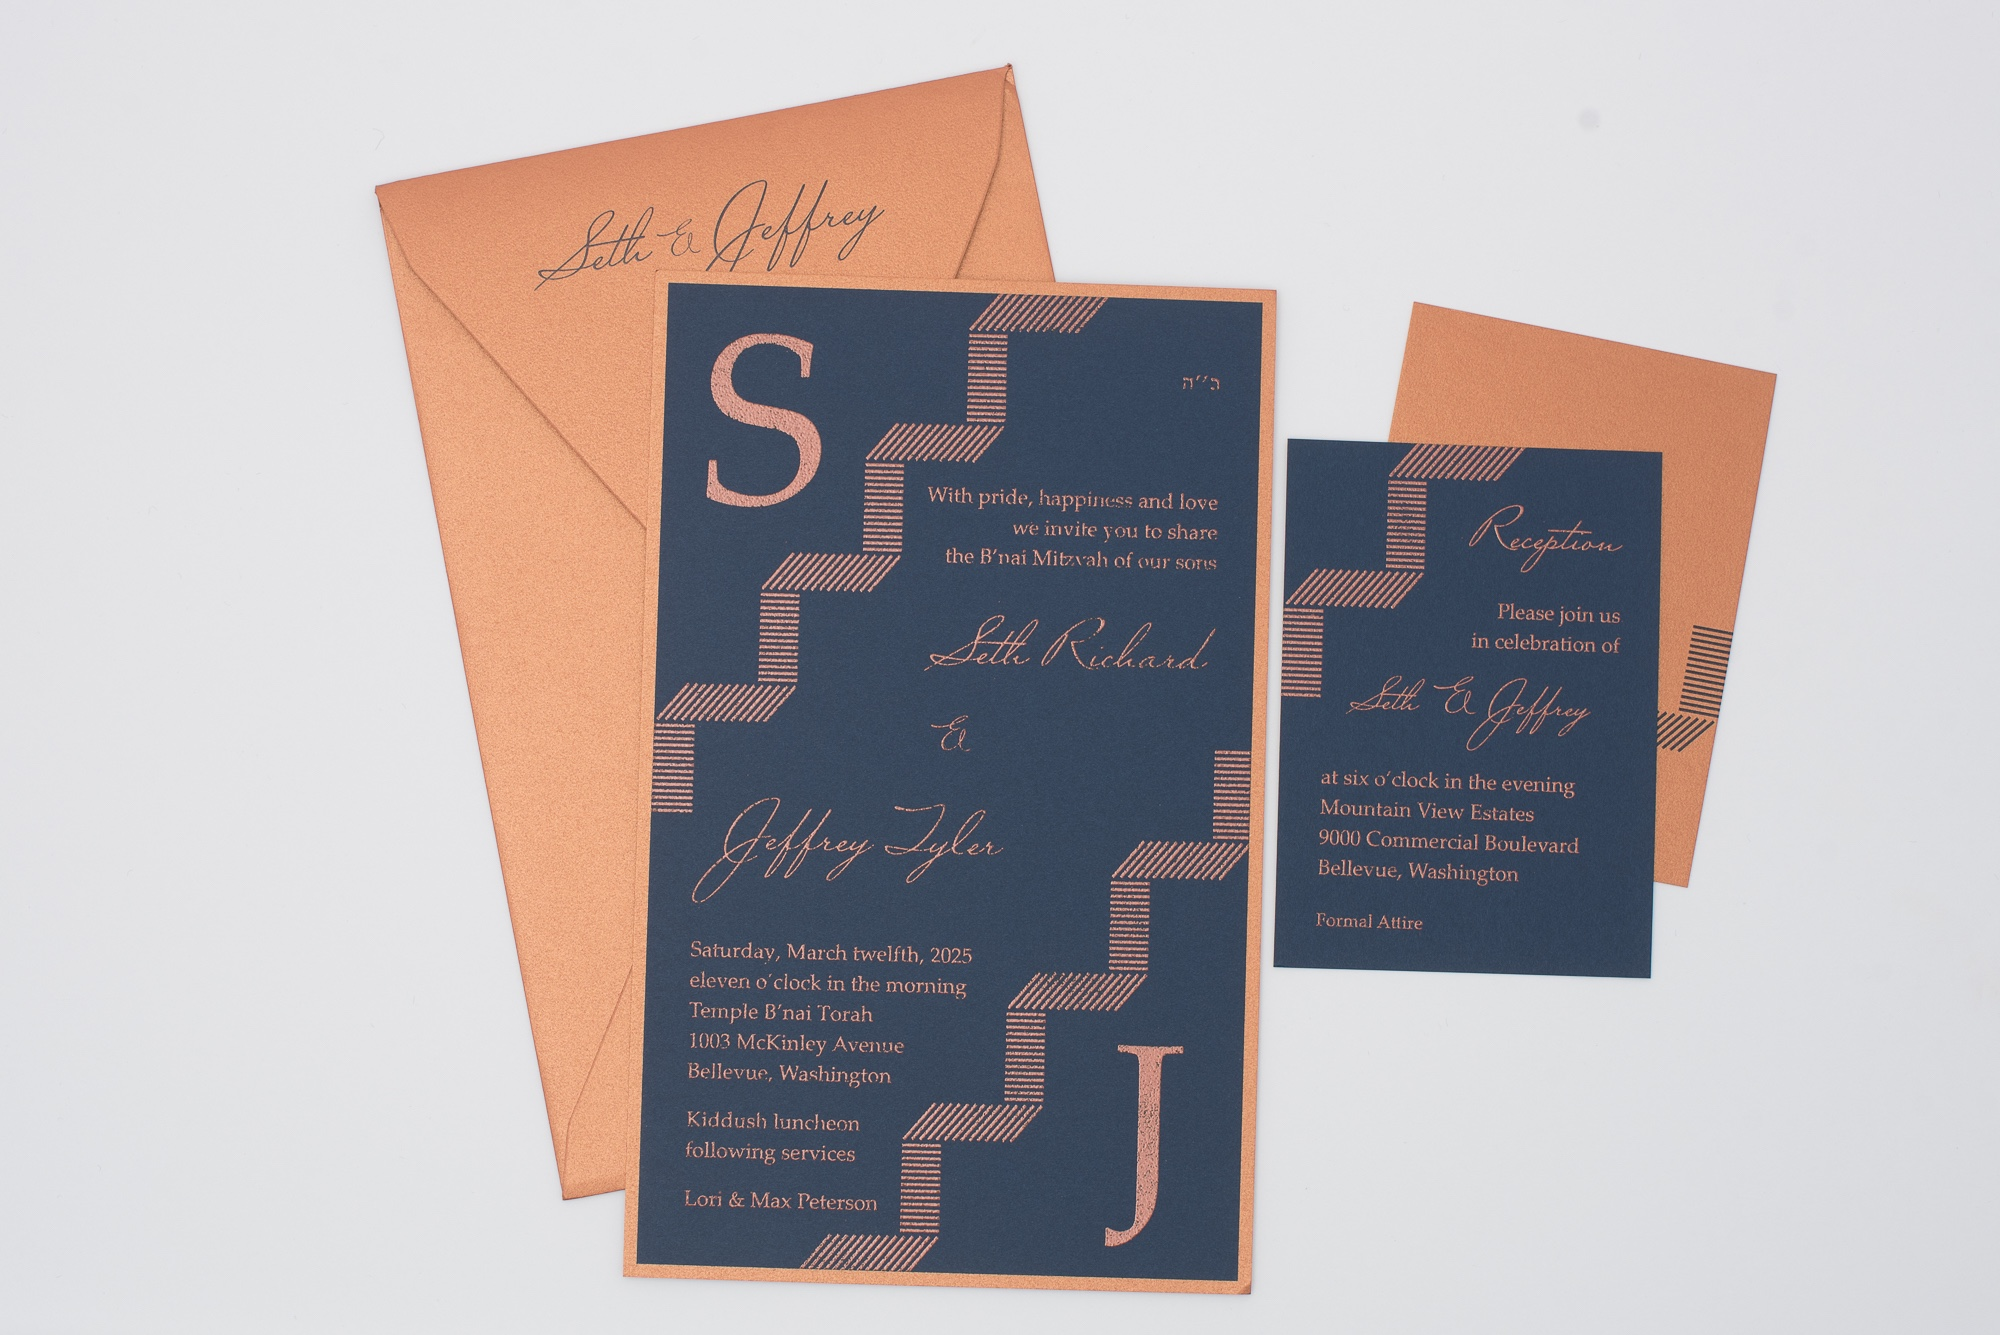 copper thermography on navy paper with copper envelopes and accent layer. B'nai Mitzvah invitation features monograms in upper and lower corners.